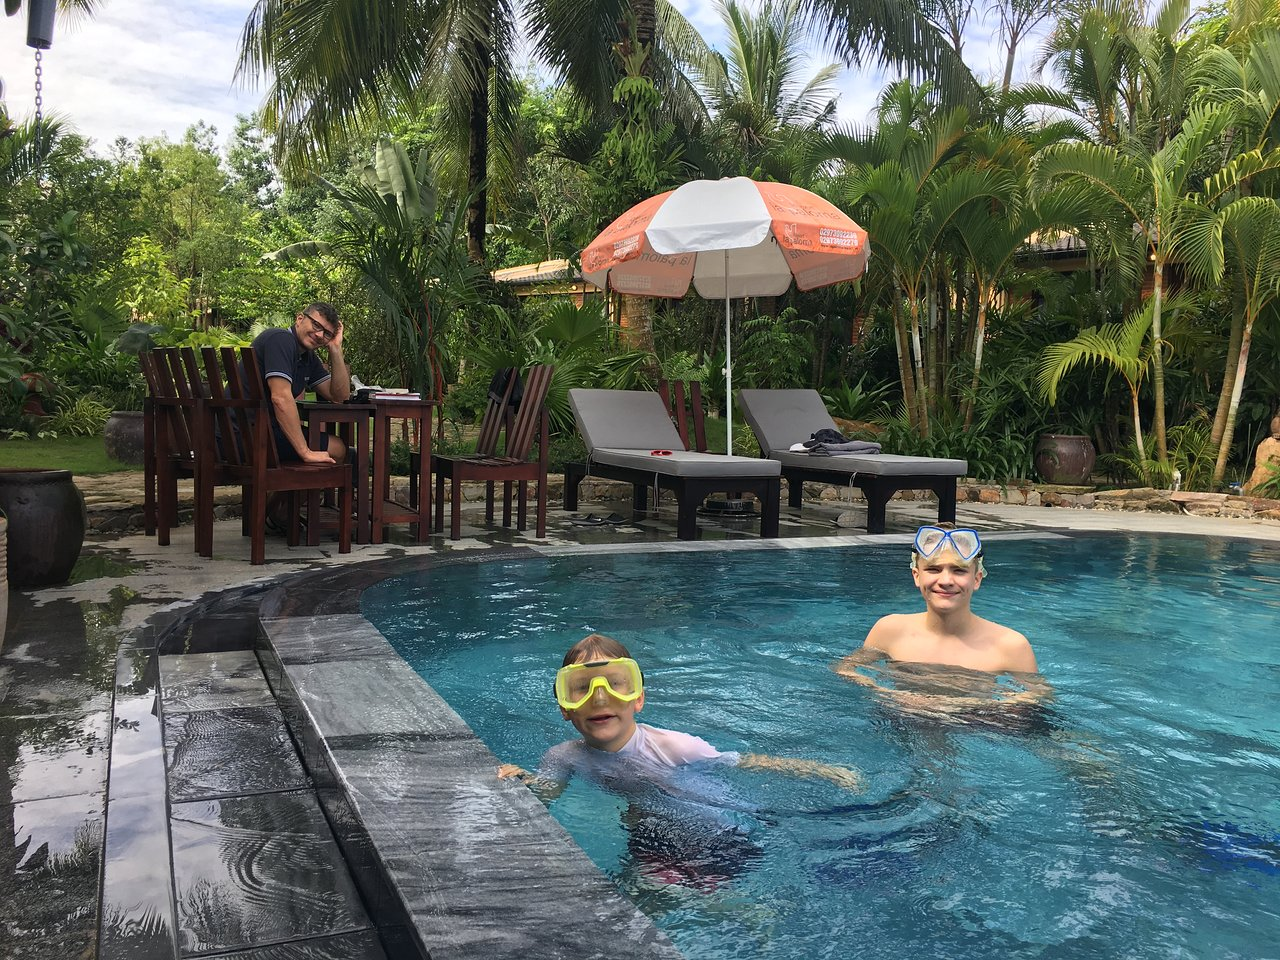 La Paloma Resort Phu Quoc Prices Hotel Reviews Phu Quoc